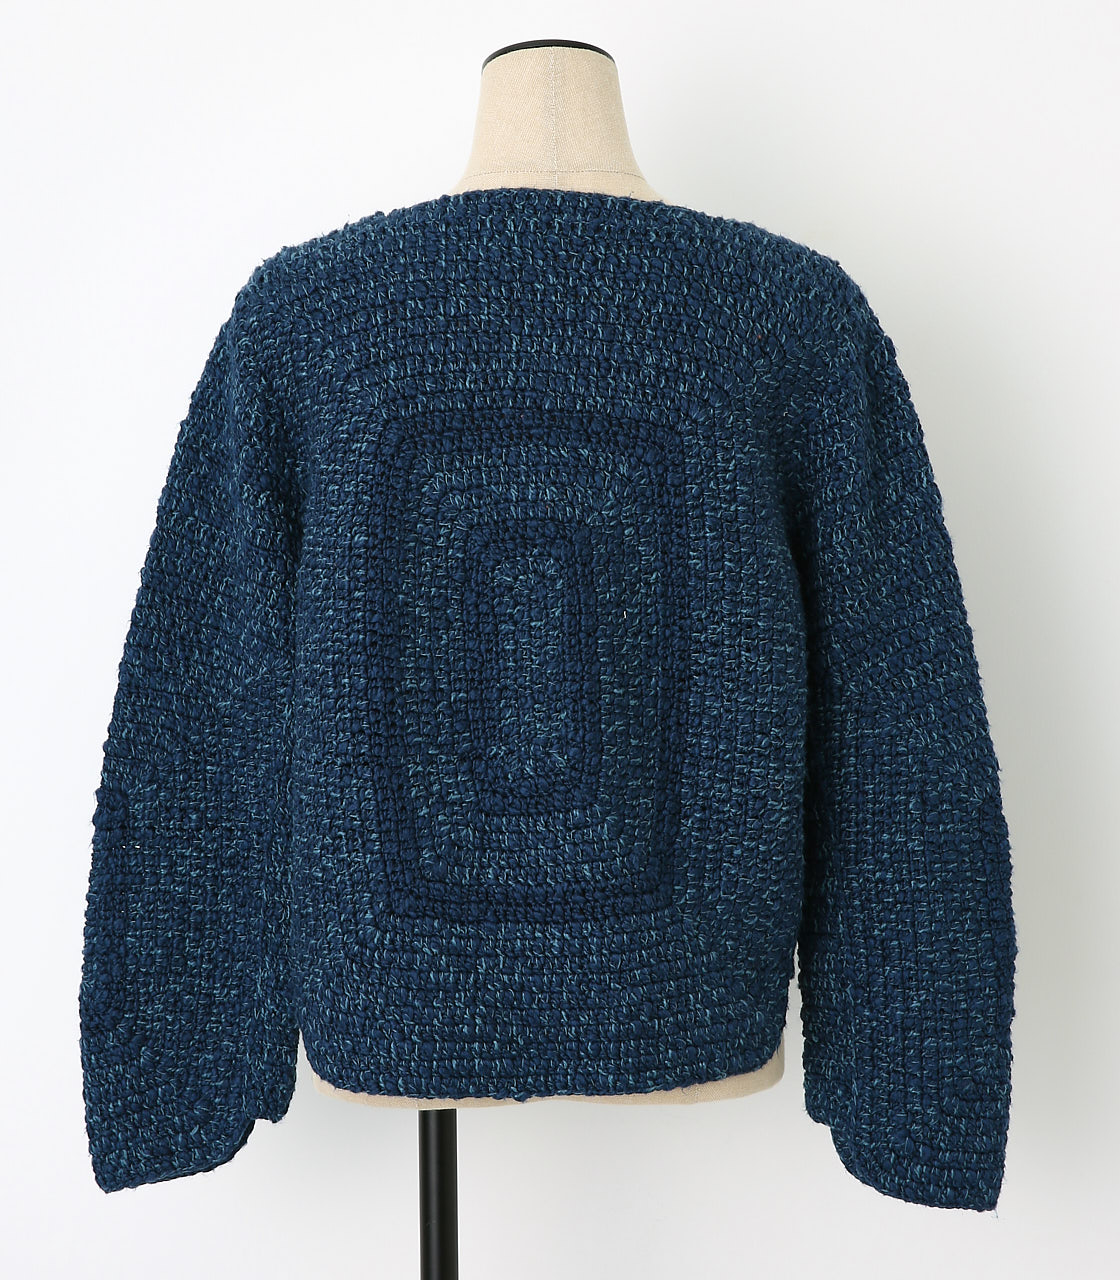 BLACK BY MOUSSY(ブラックバイマウジー) |crochet knit tops